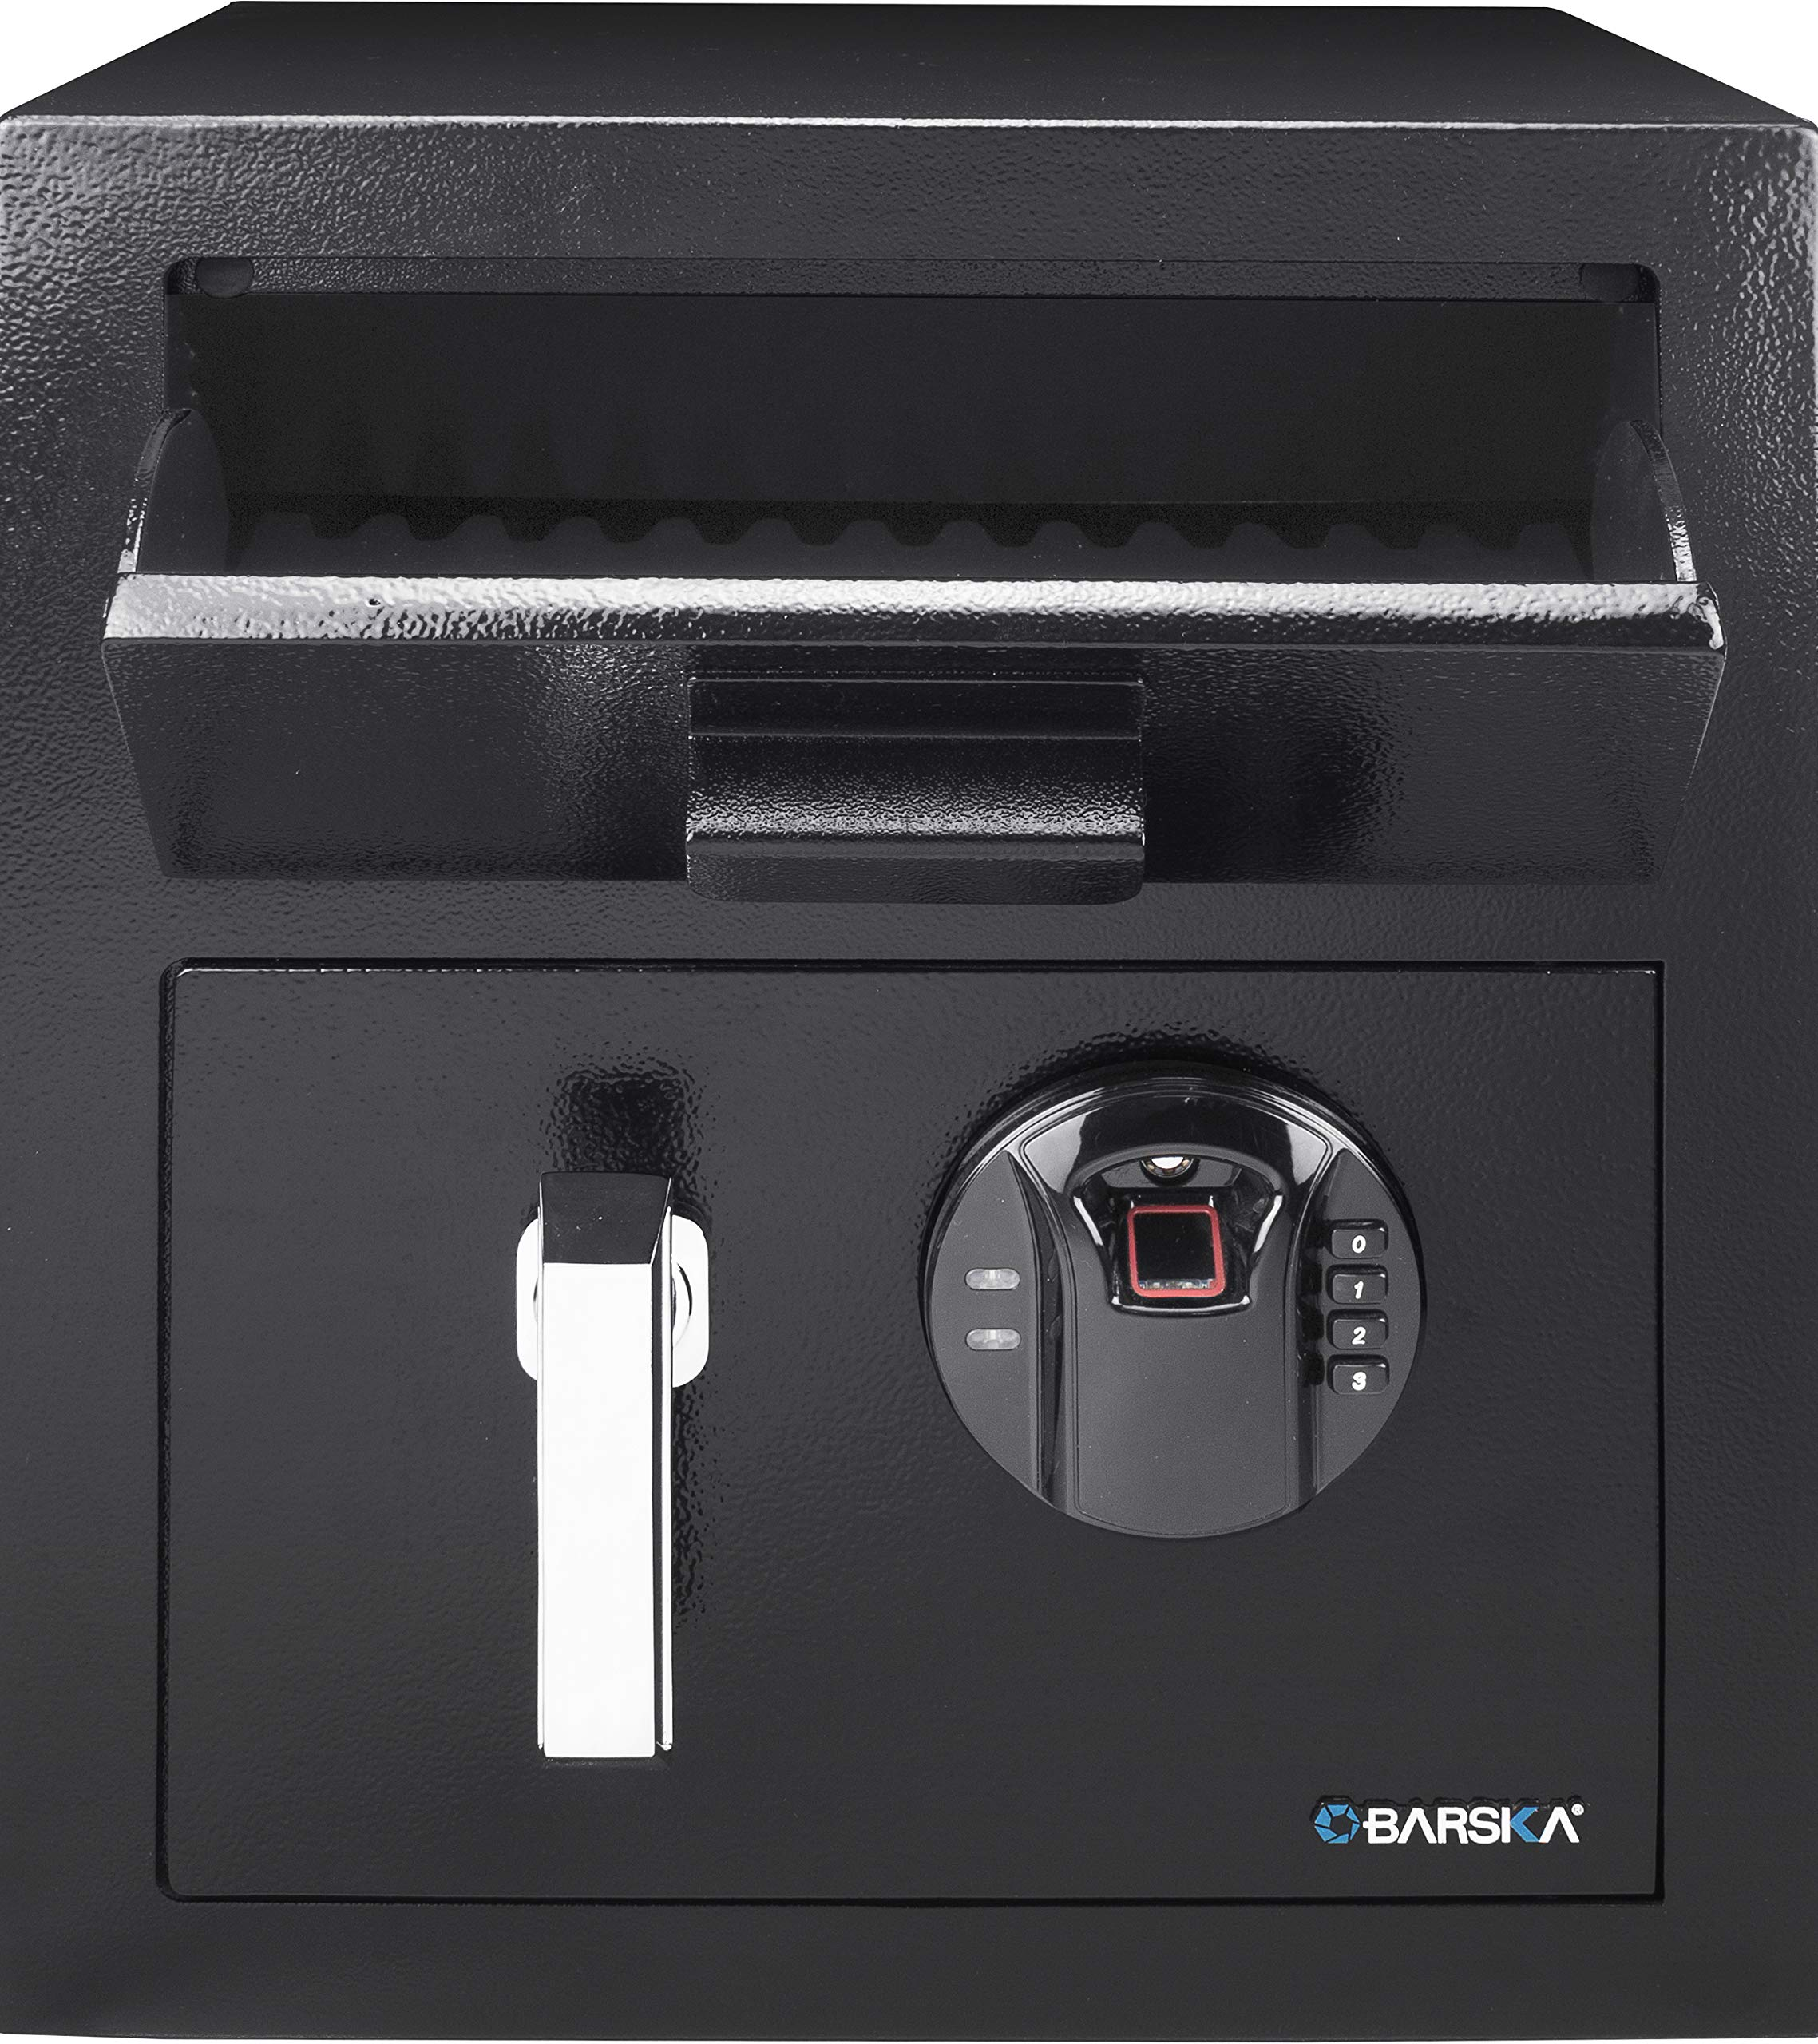 Biometric Fingerprint Digital Keypad Depository Safe Drop Slot Box 13.75 x 13.75 x 16